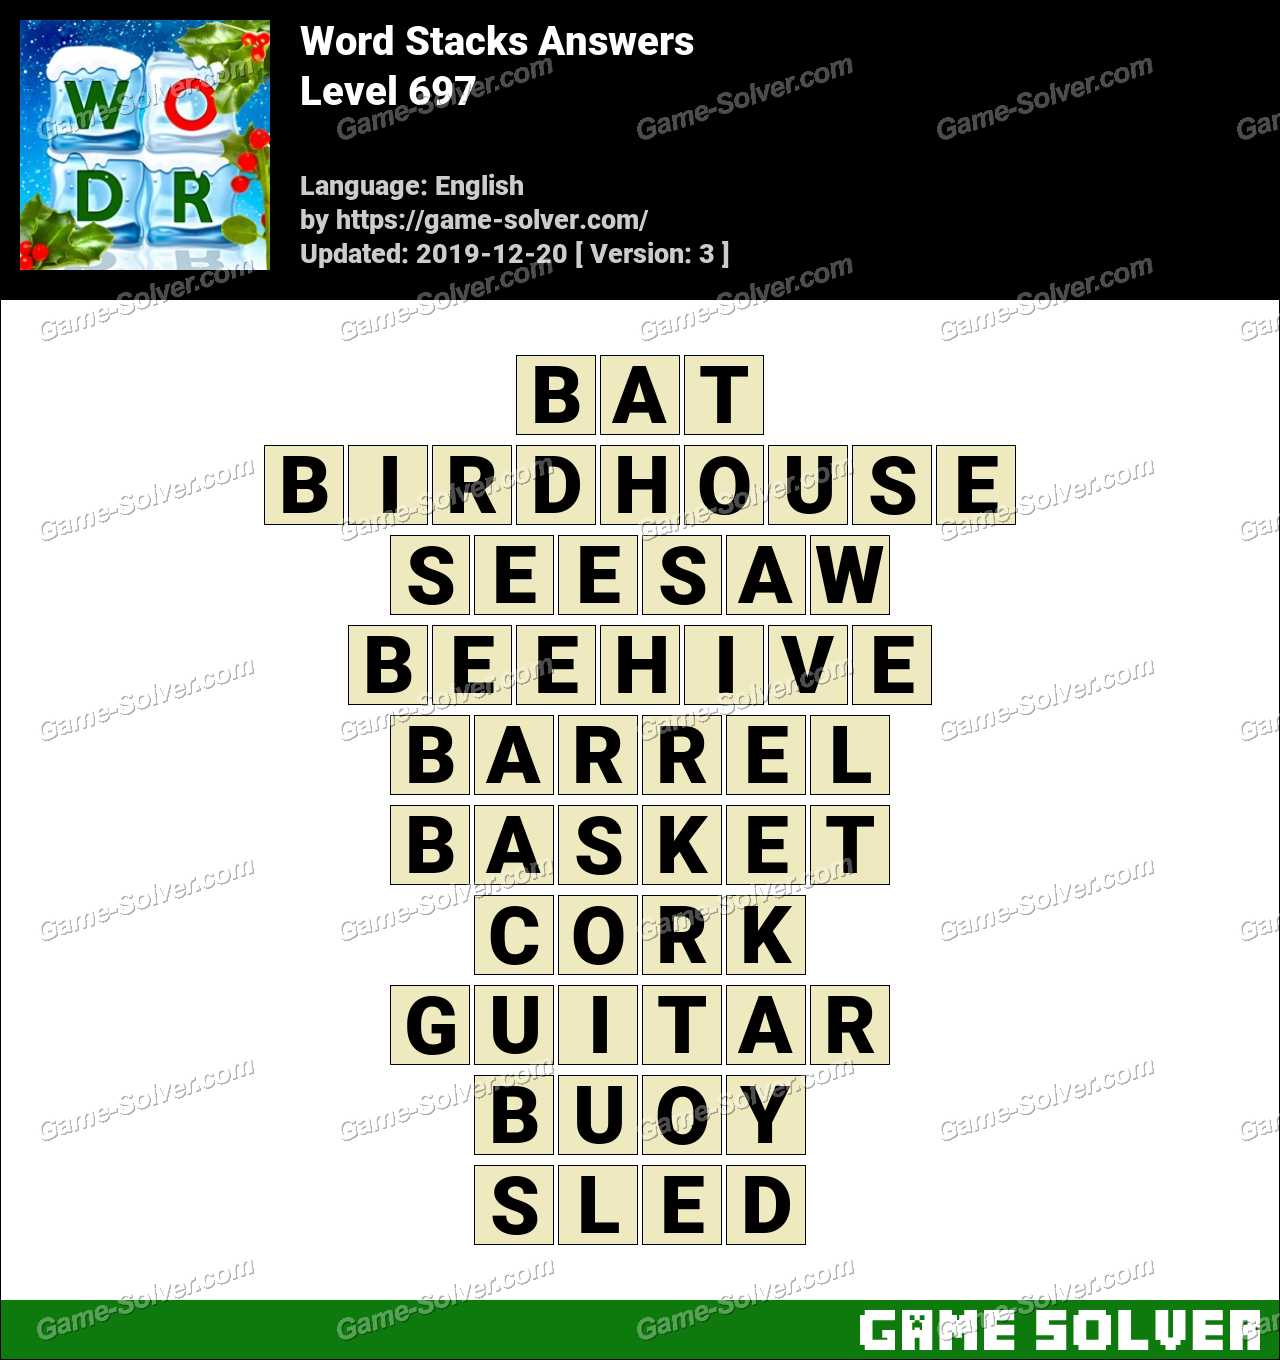 Word Stacks Level 697 Answers